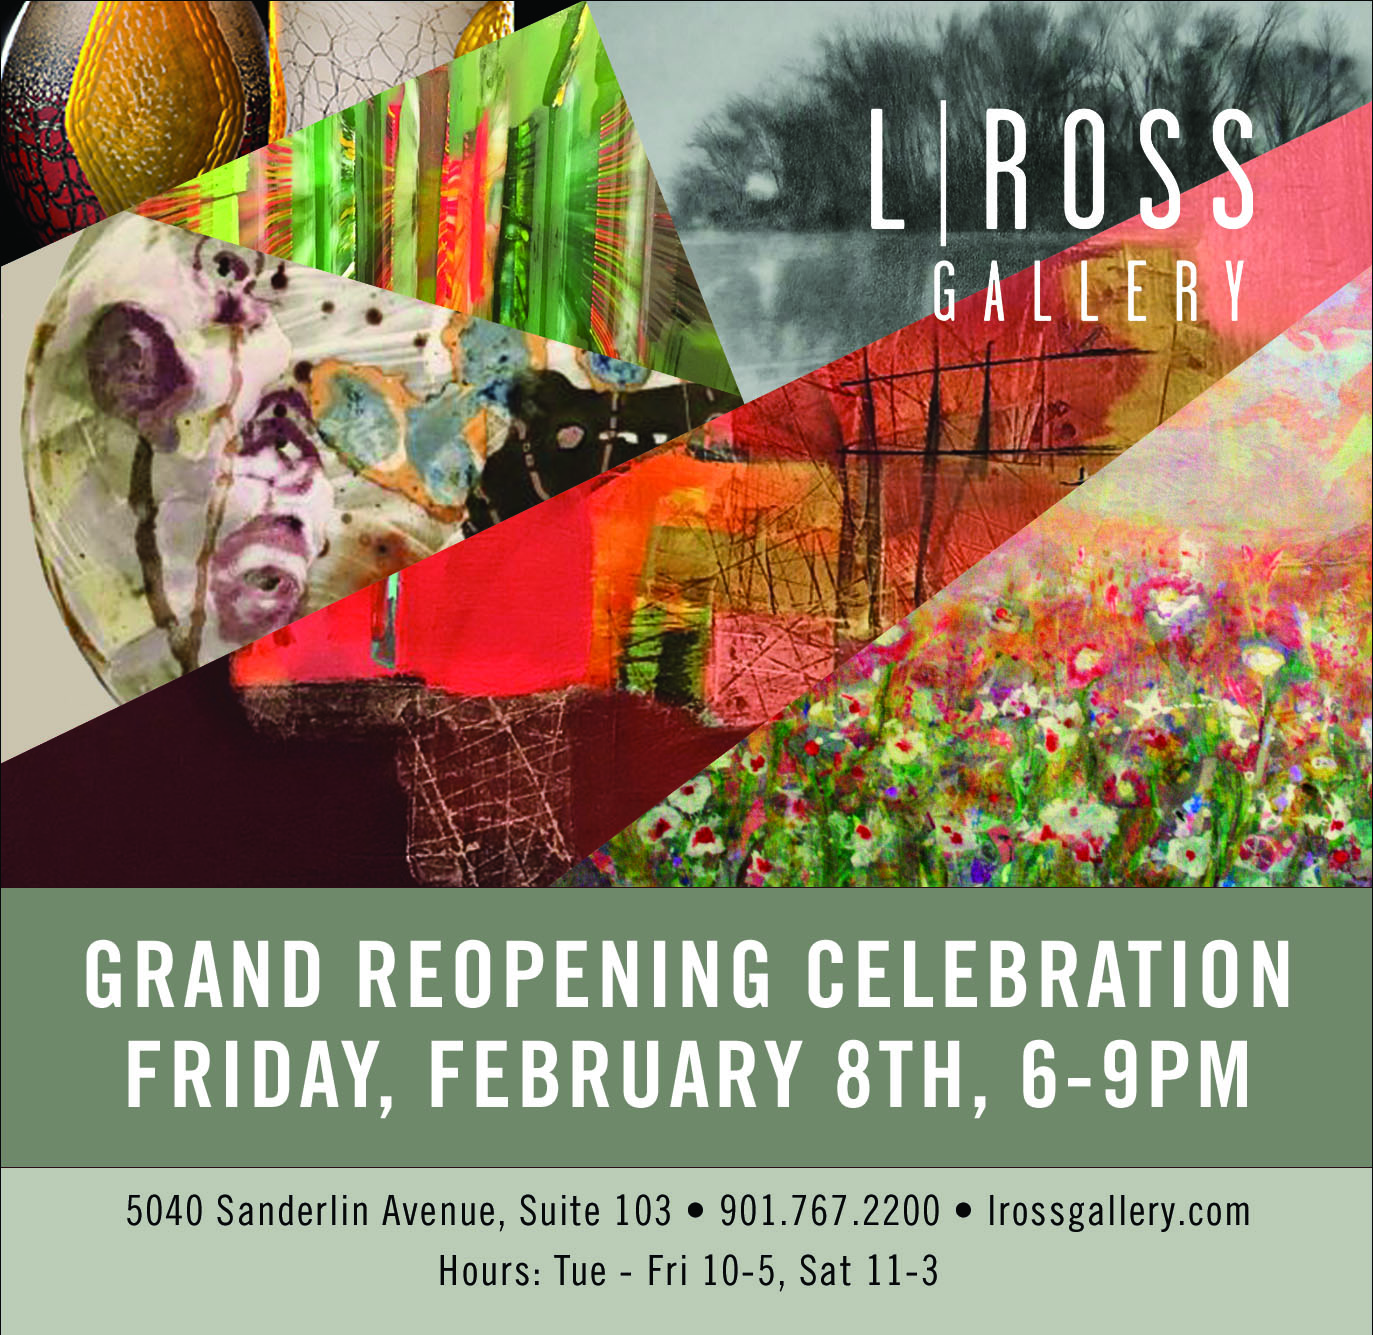 L | Ross Gallery Grand Reopening Celebration